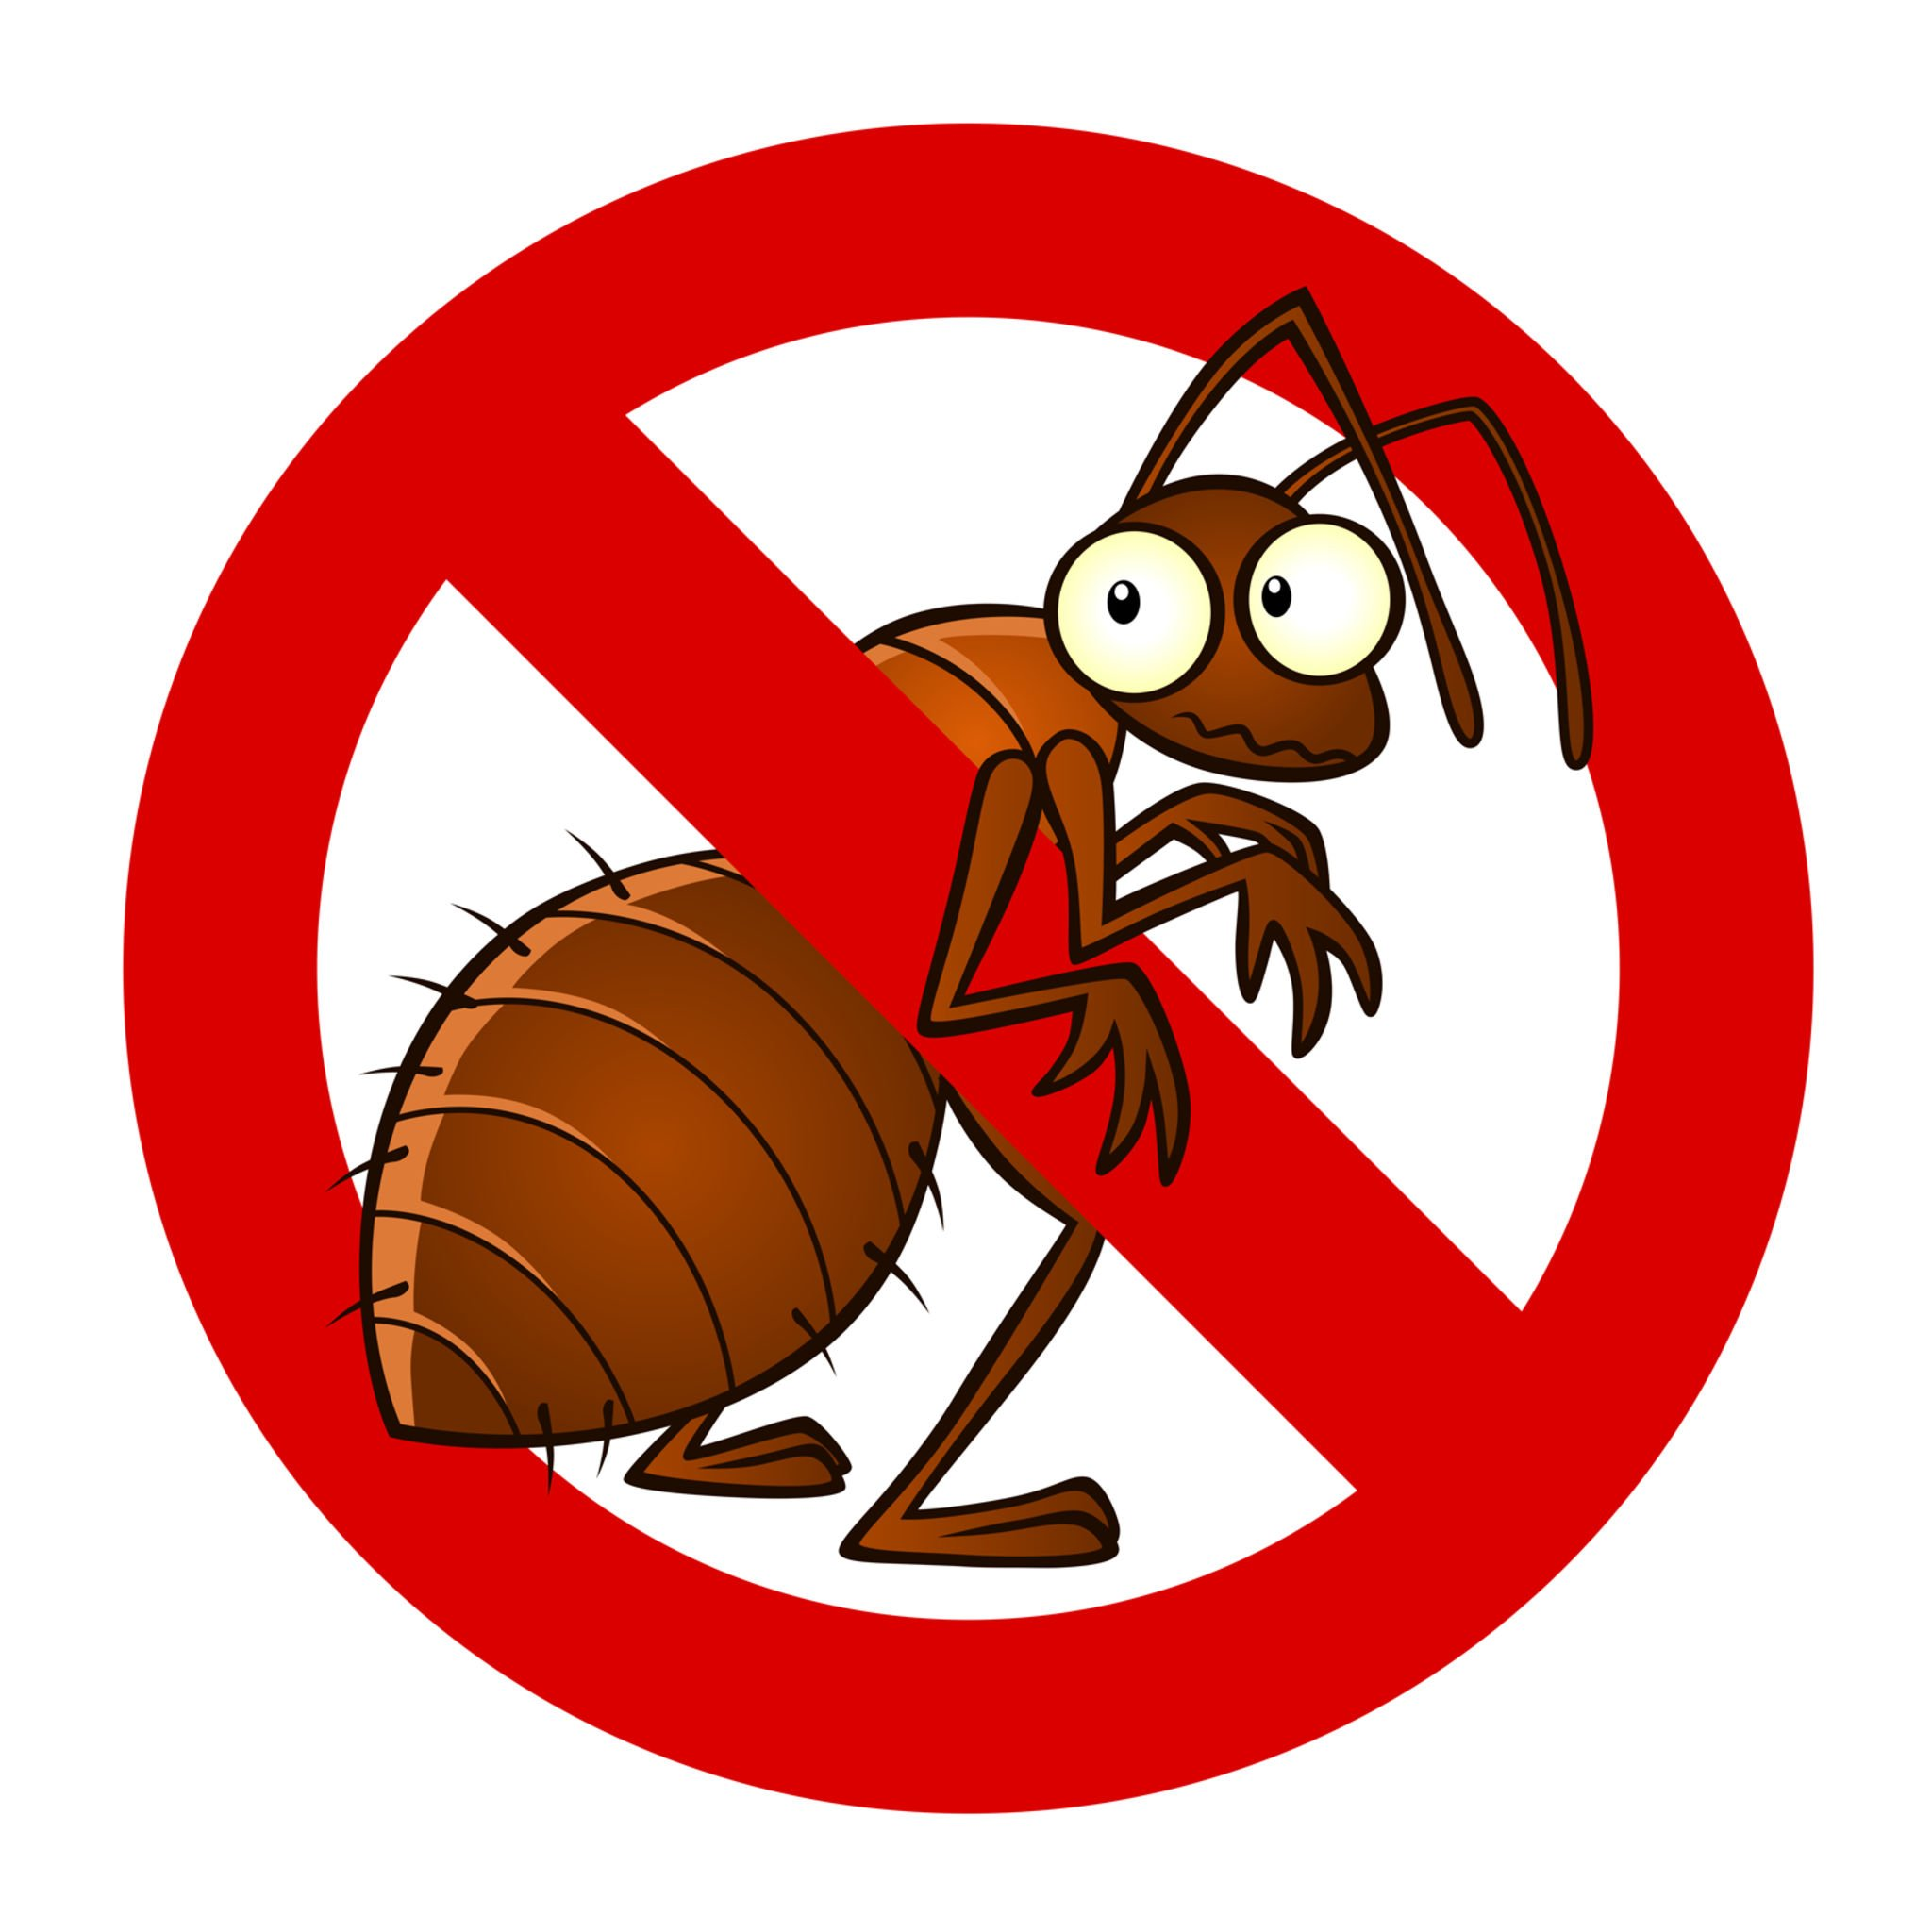 Tips On How To Avoid Unwanted Bed Bug Infestations - Don't Let The Bed Bugs Bite